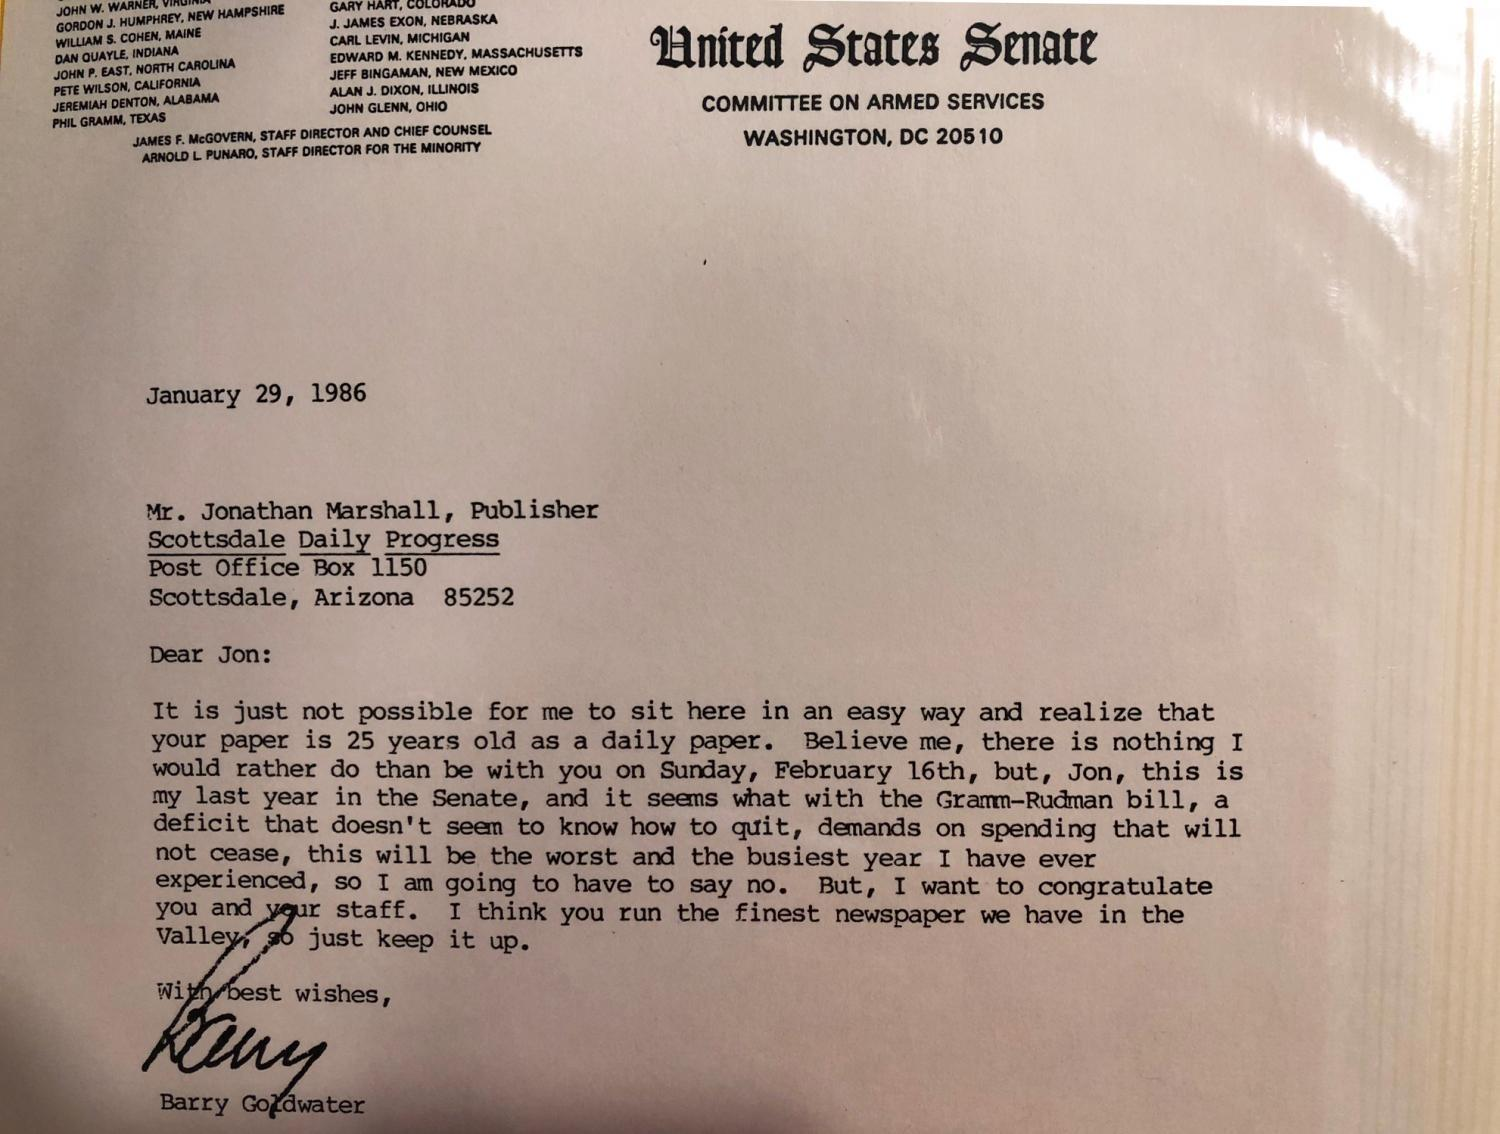 Letter from Barry Goldwater to Jonathan Marshall, publisher of the Scottsdale Progress